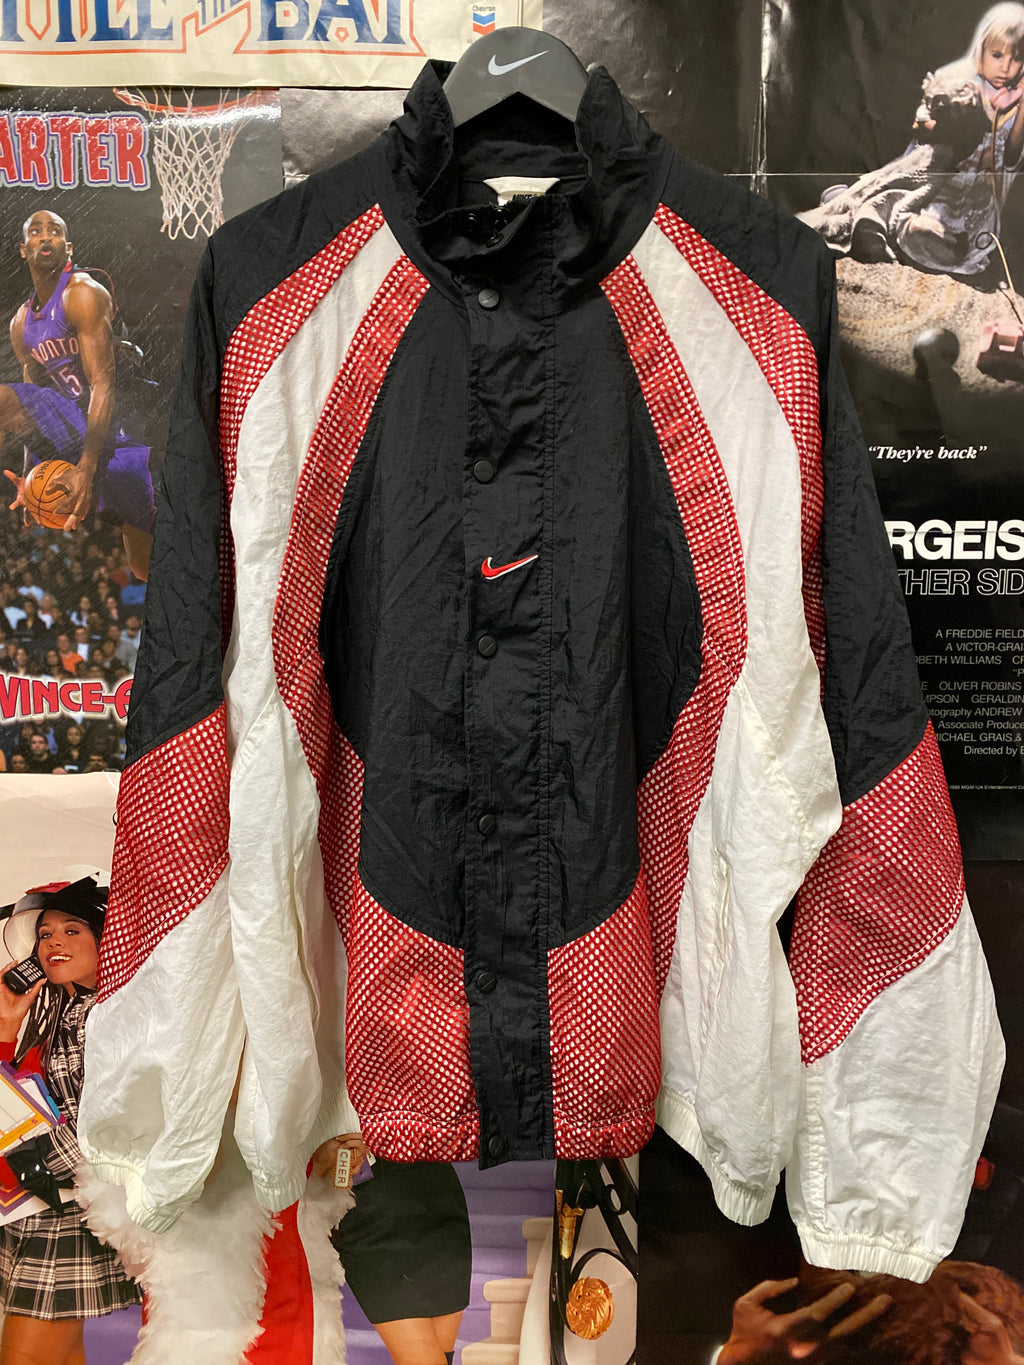 Nike Mesh Windbreaker XL - Decades of dope